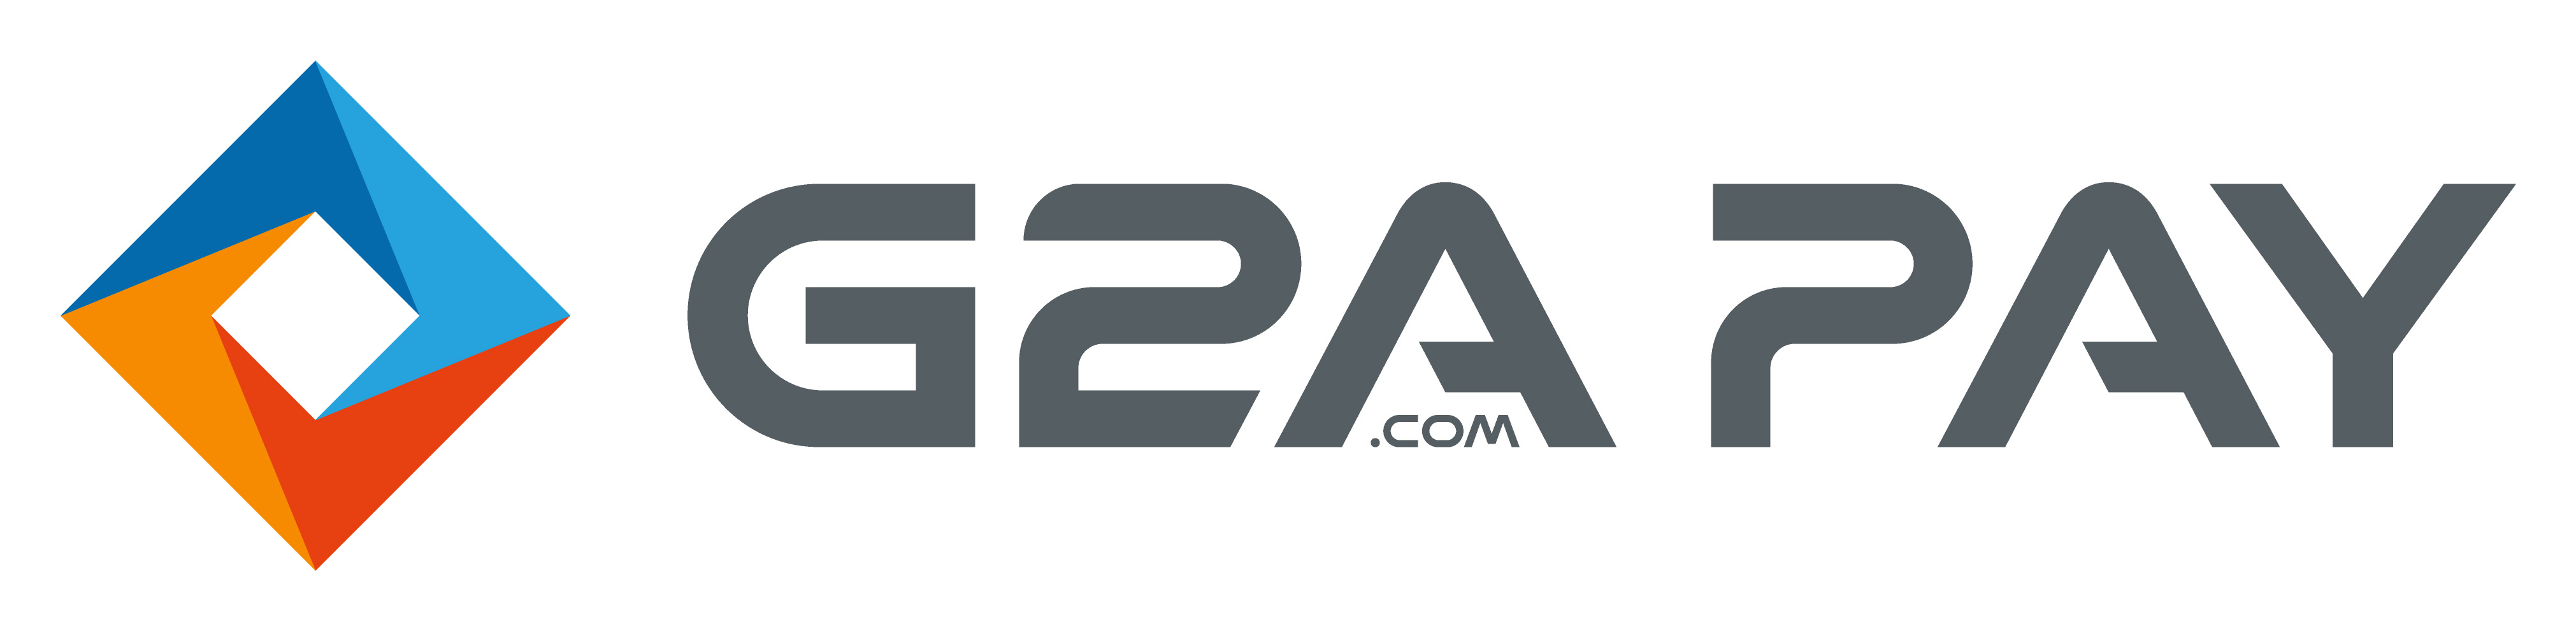 g2a pay angellist